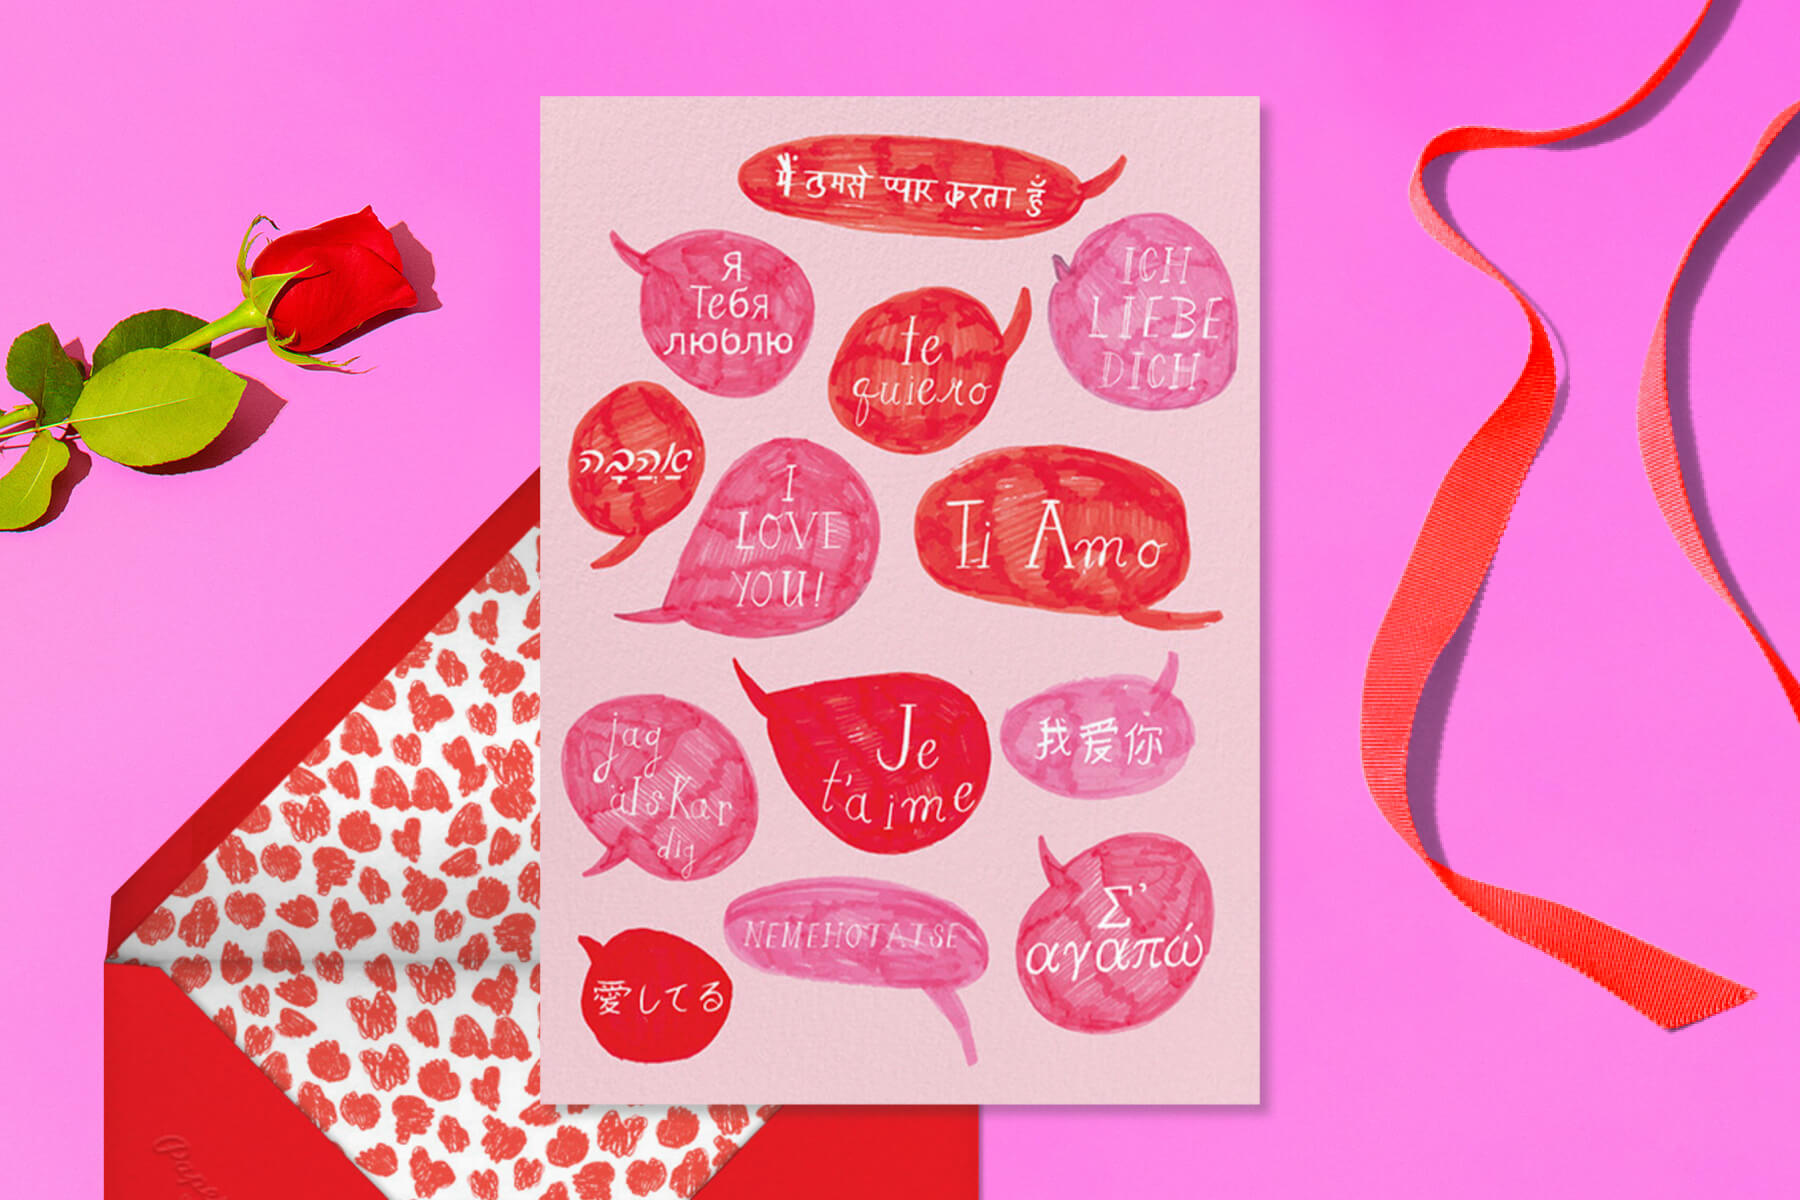 60 Valentine's Day card messages and quotes